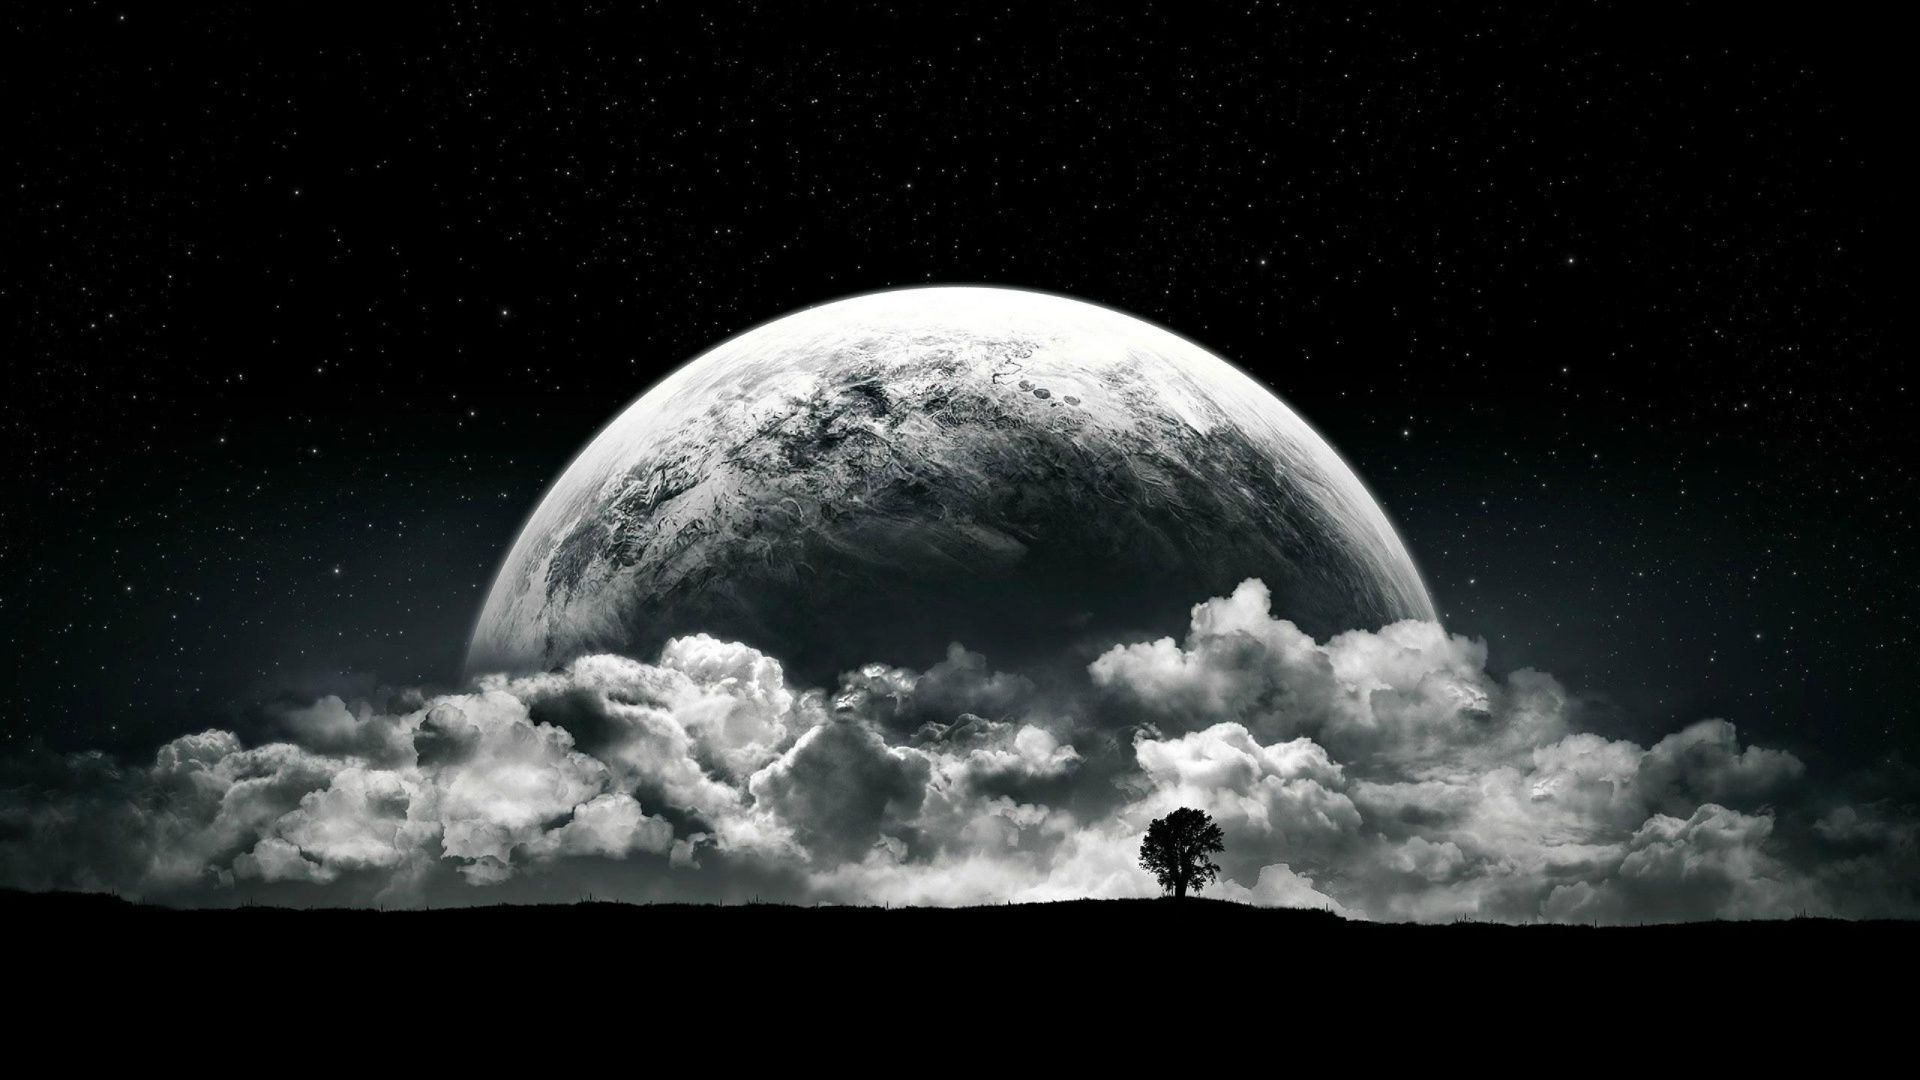 Moon wallpaper ?? Download free amazing full HD backgrounds for ...